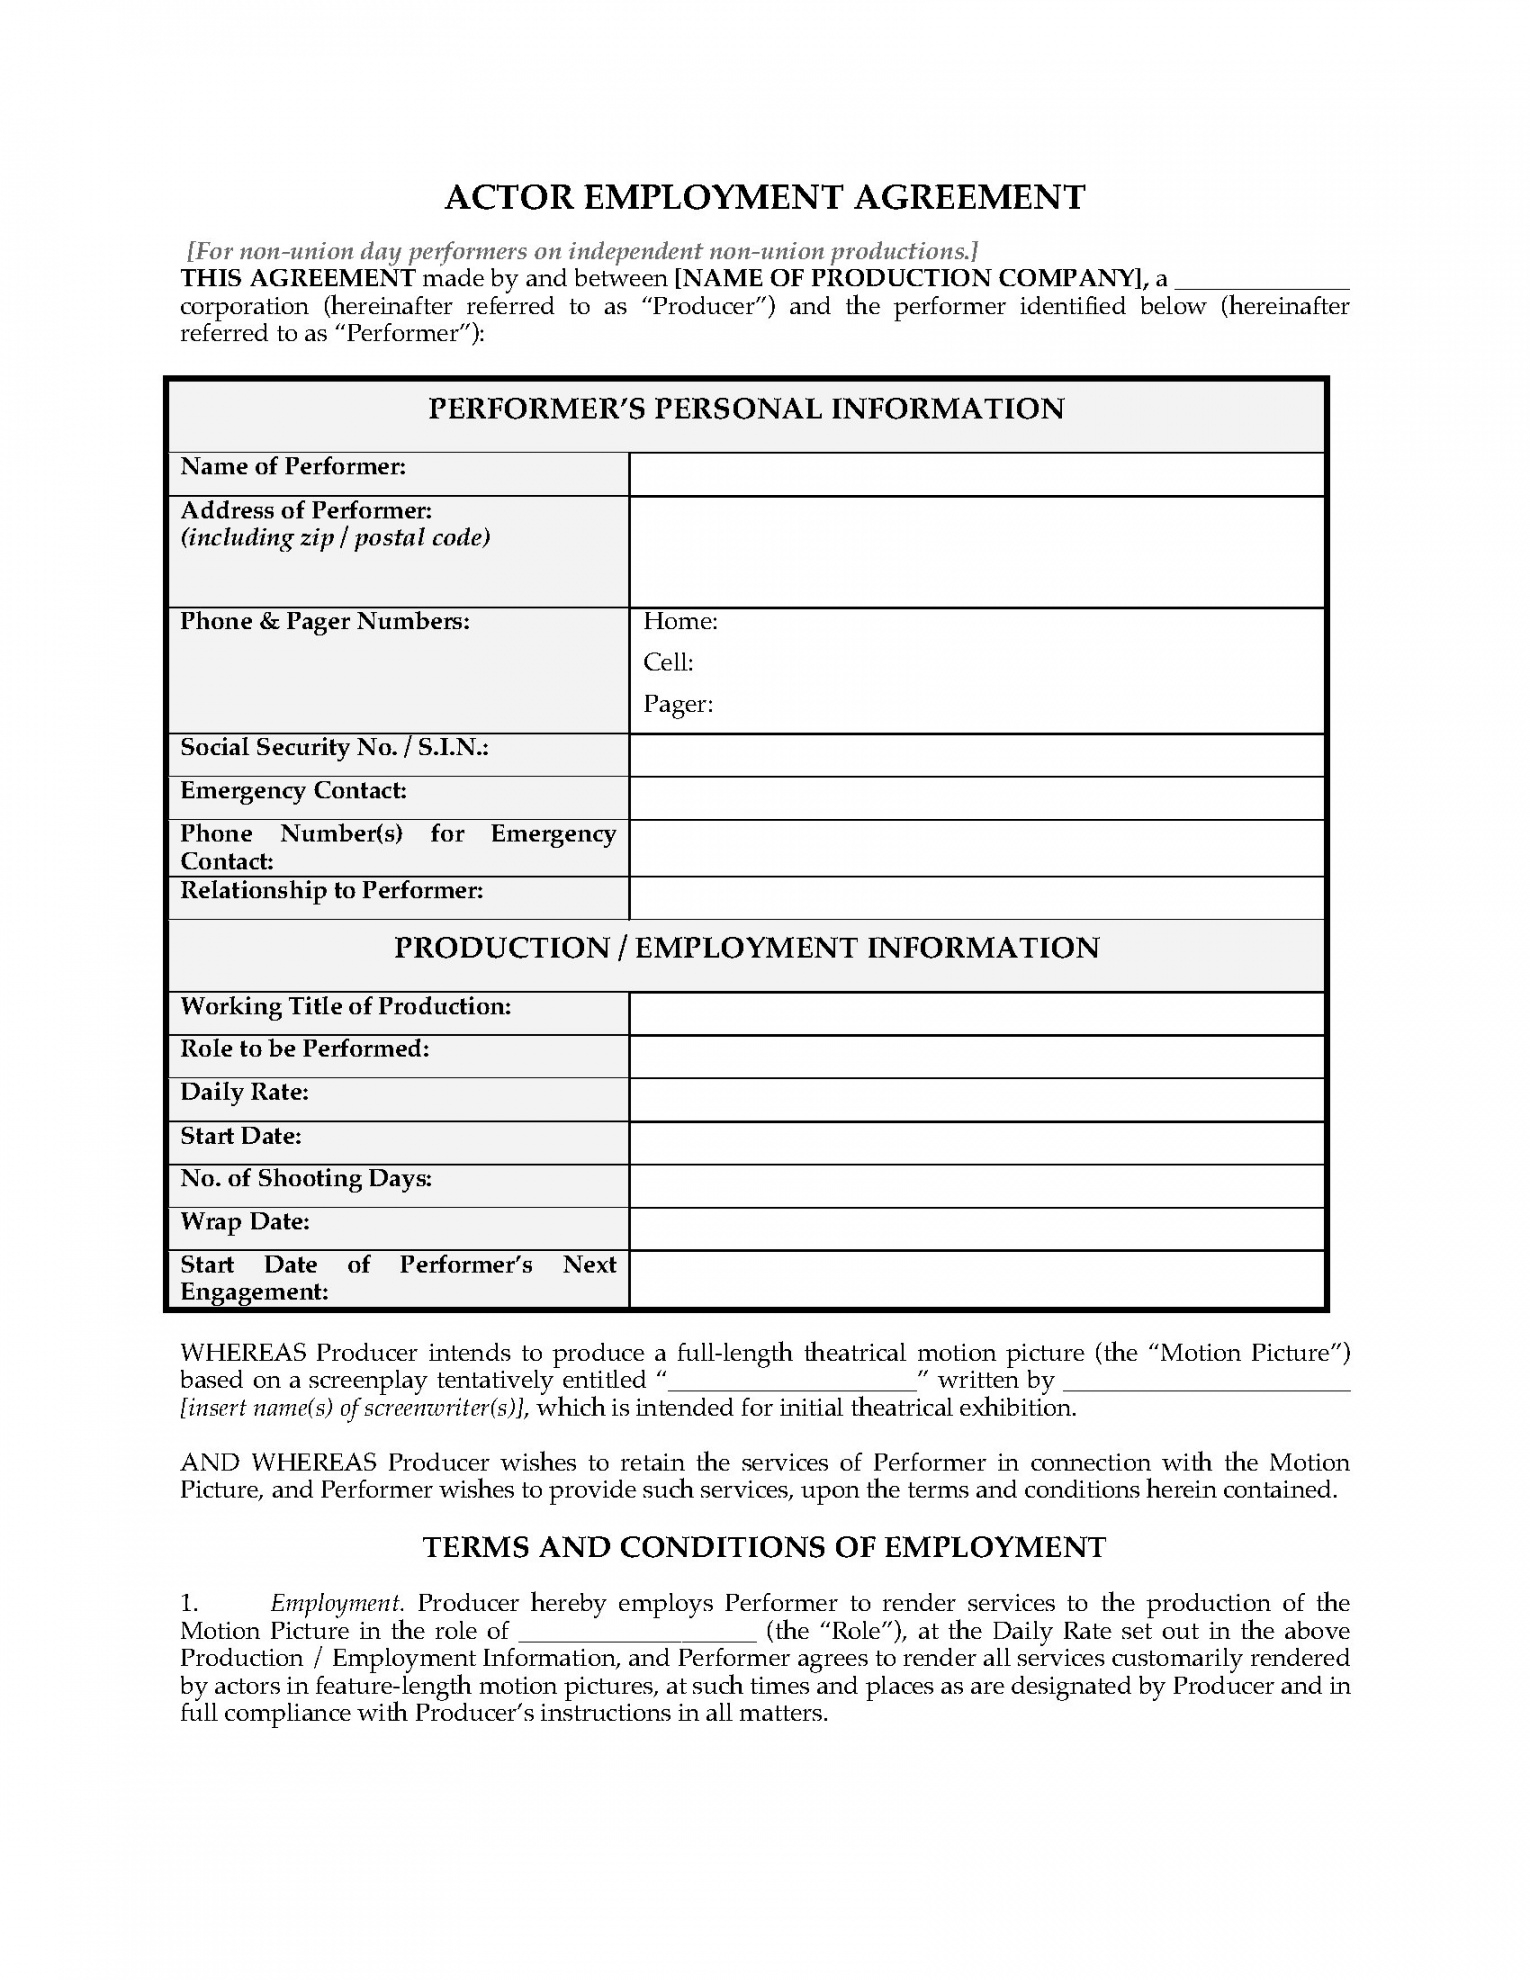 Actor Employment Agreement For Nonunion Day Performers Legal Film Crew Contract Template